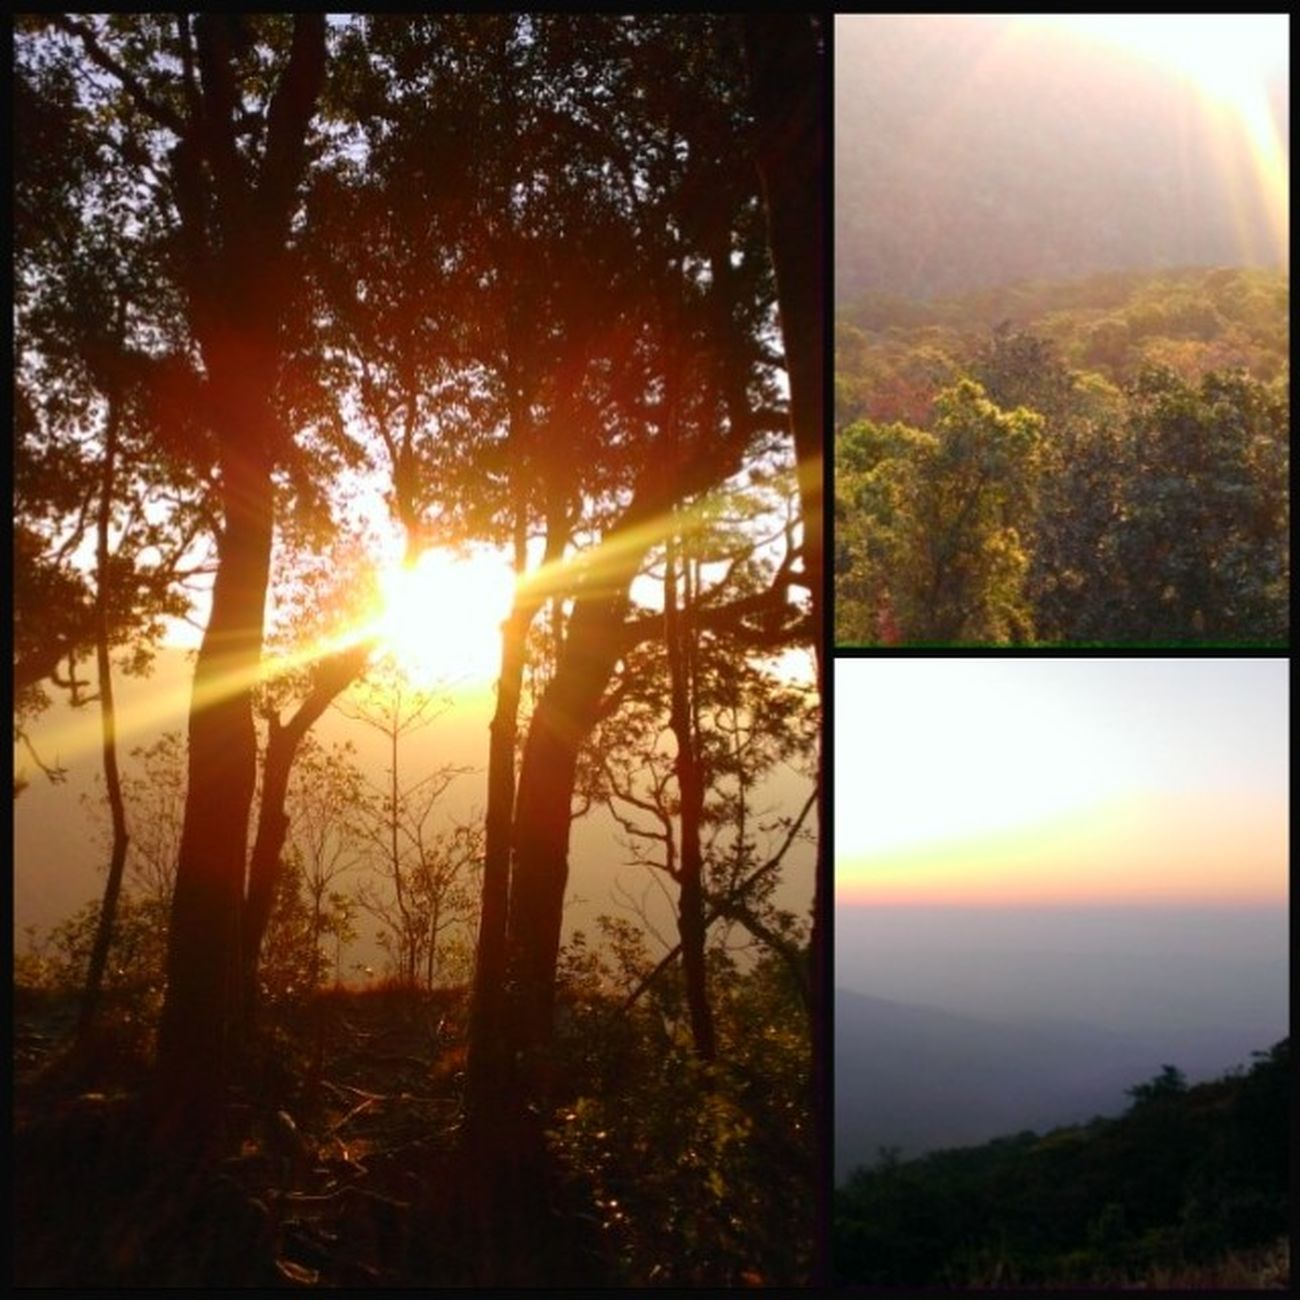 Khaoyhai in my heart. Khaoyhai Thailand Sunrise Forest Picoftheday Igers Htc8x